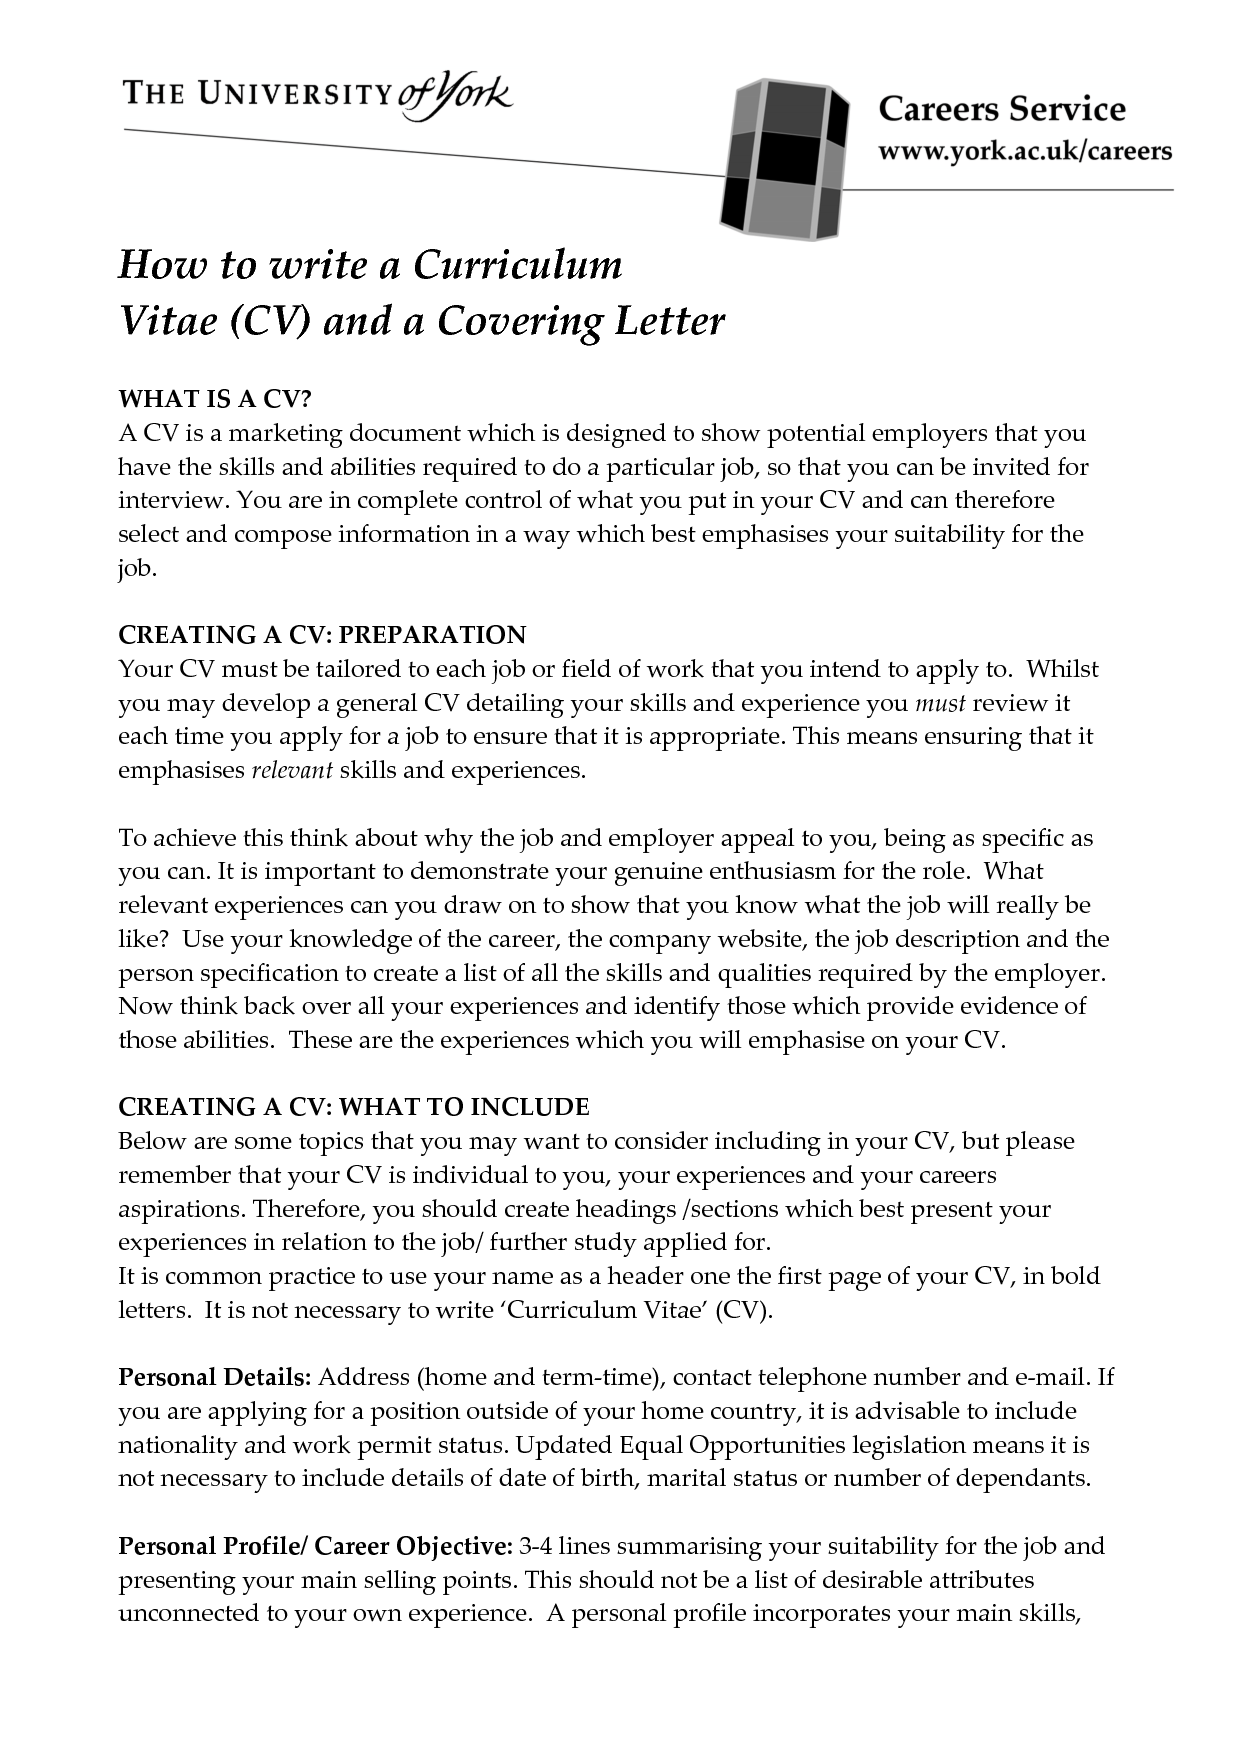 How to write a CV?